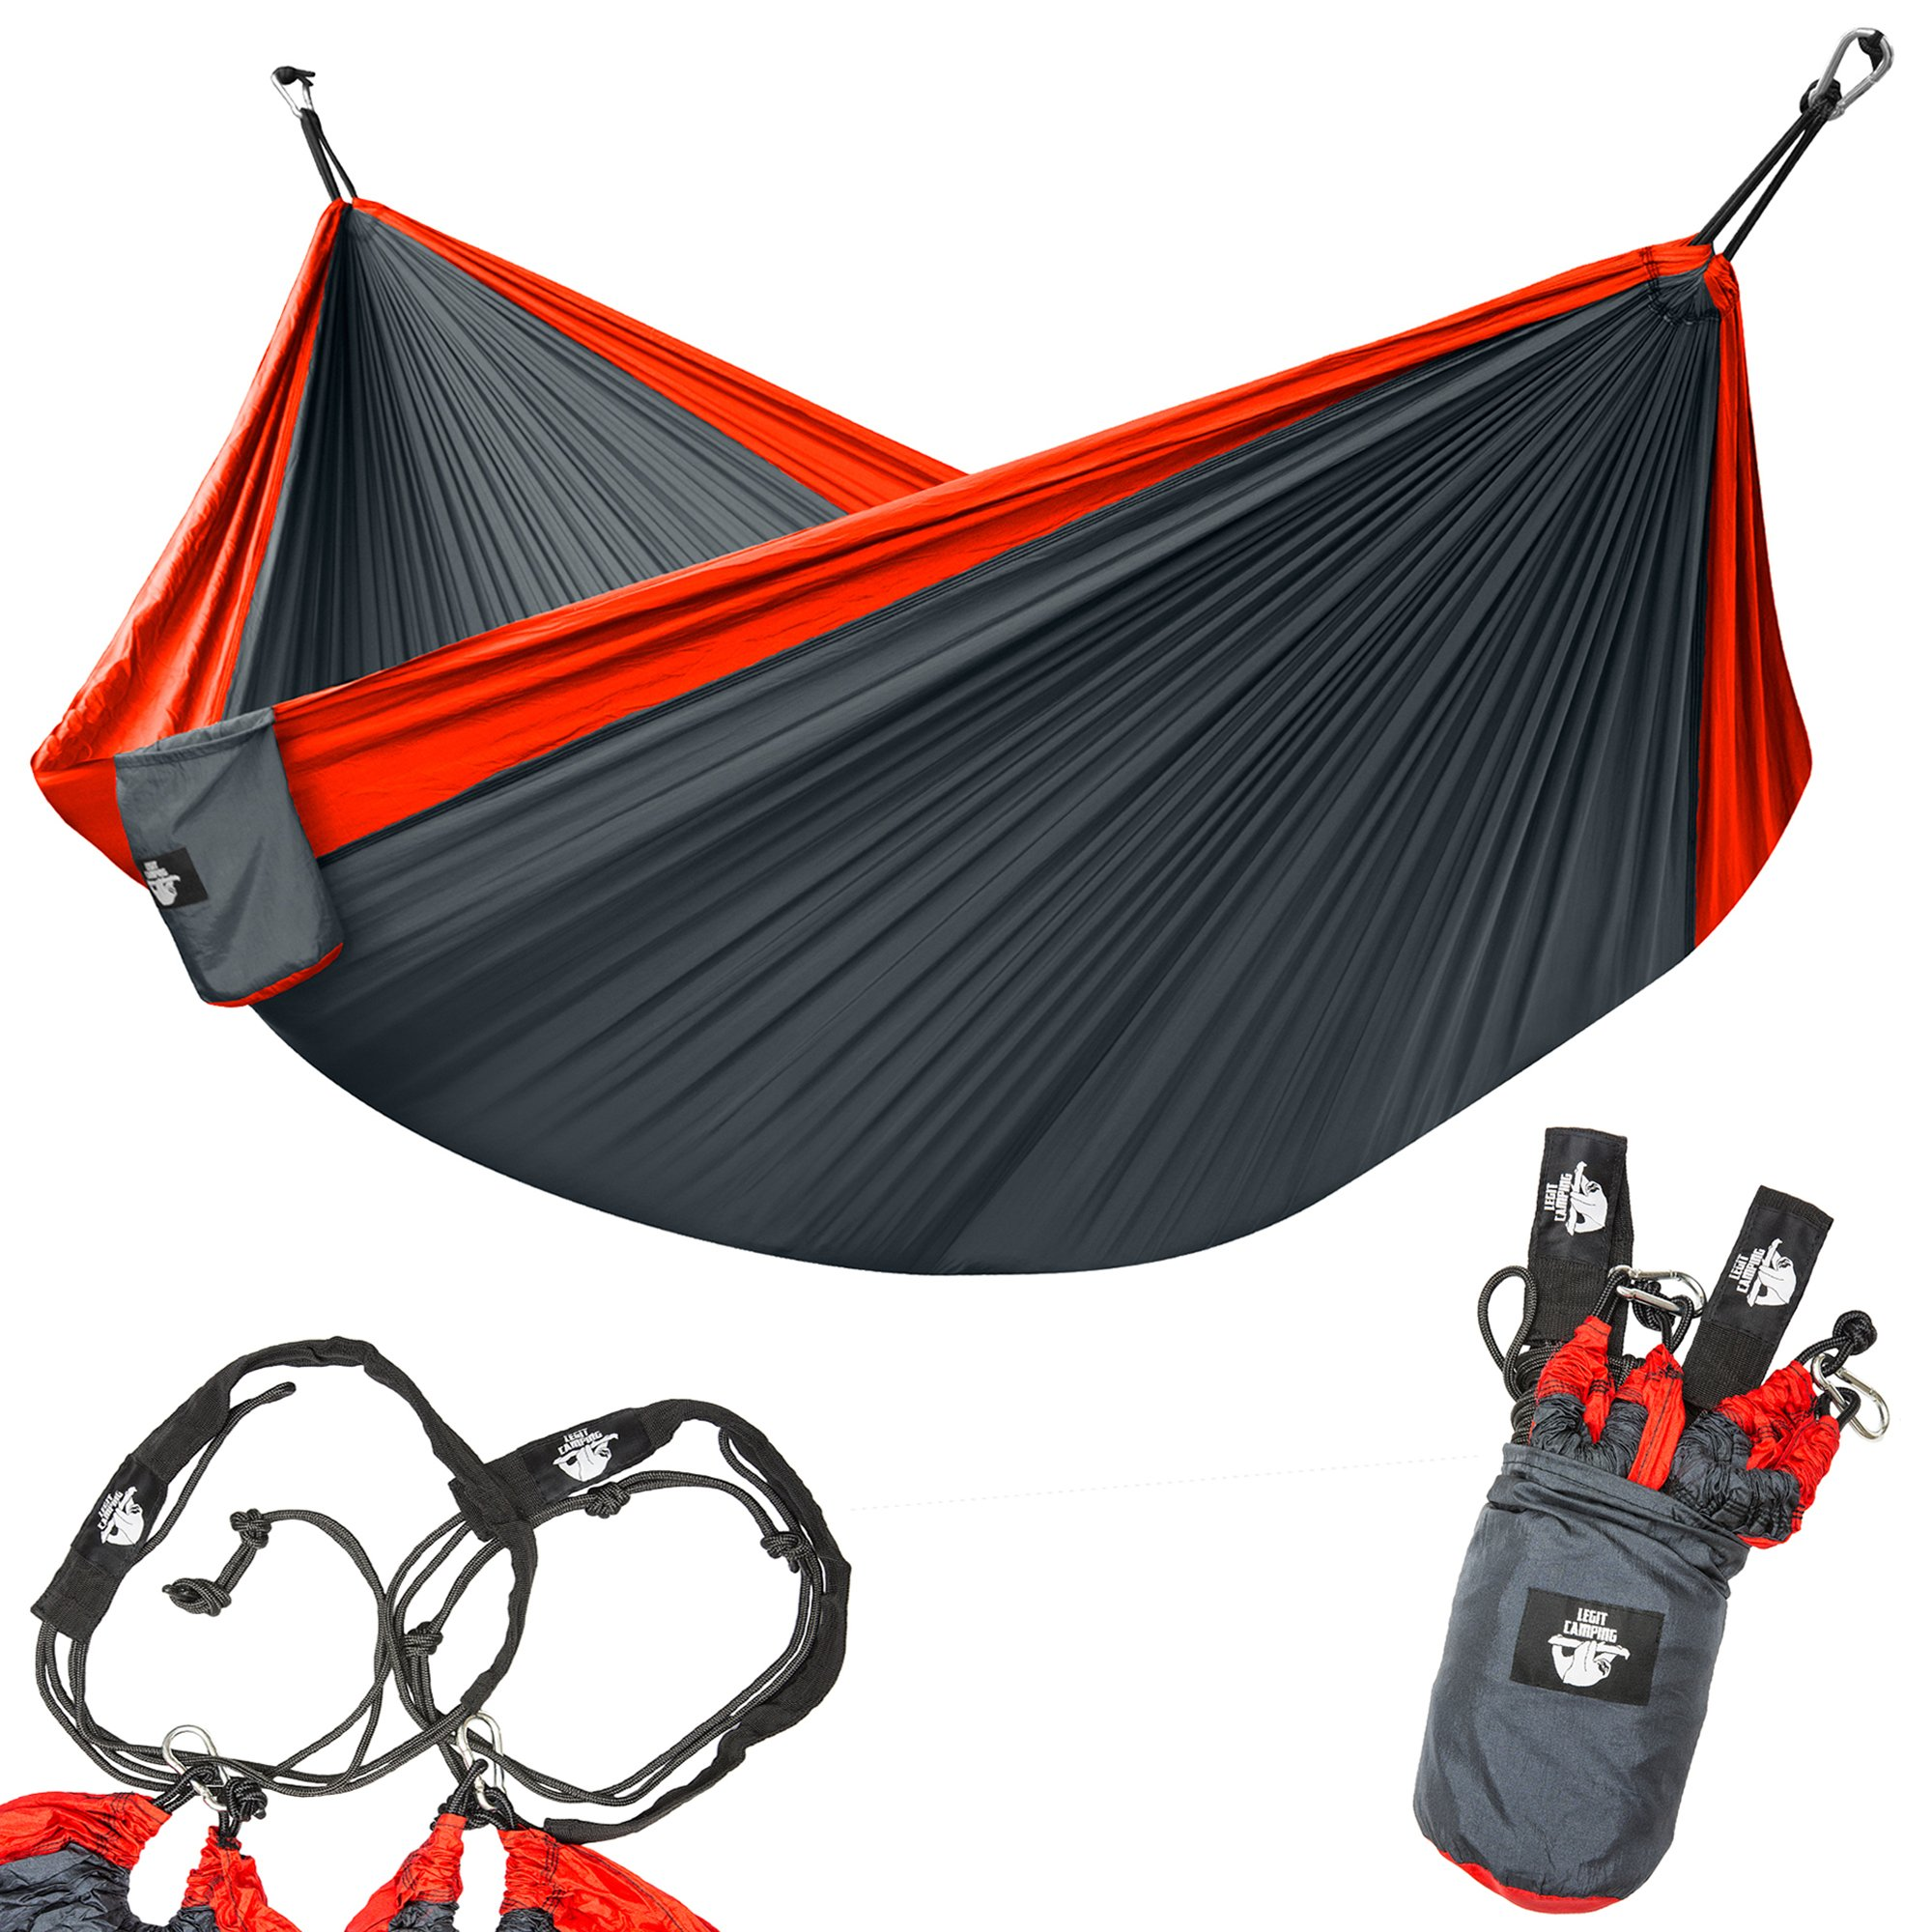 Legit Camping Double Hammock - Lightweight Parachute Portable Hammocks for Hiking, Travel, Backpacking, Beach, Yard Gear Includes Nylon Straps & Steel Carabiners (Ruby/Charcoal) by Legit Camping